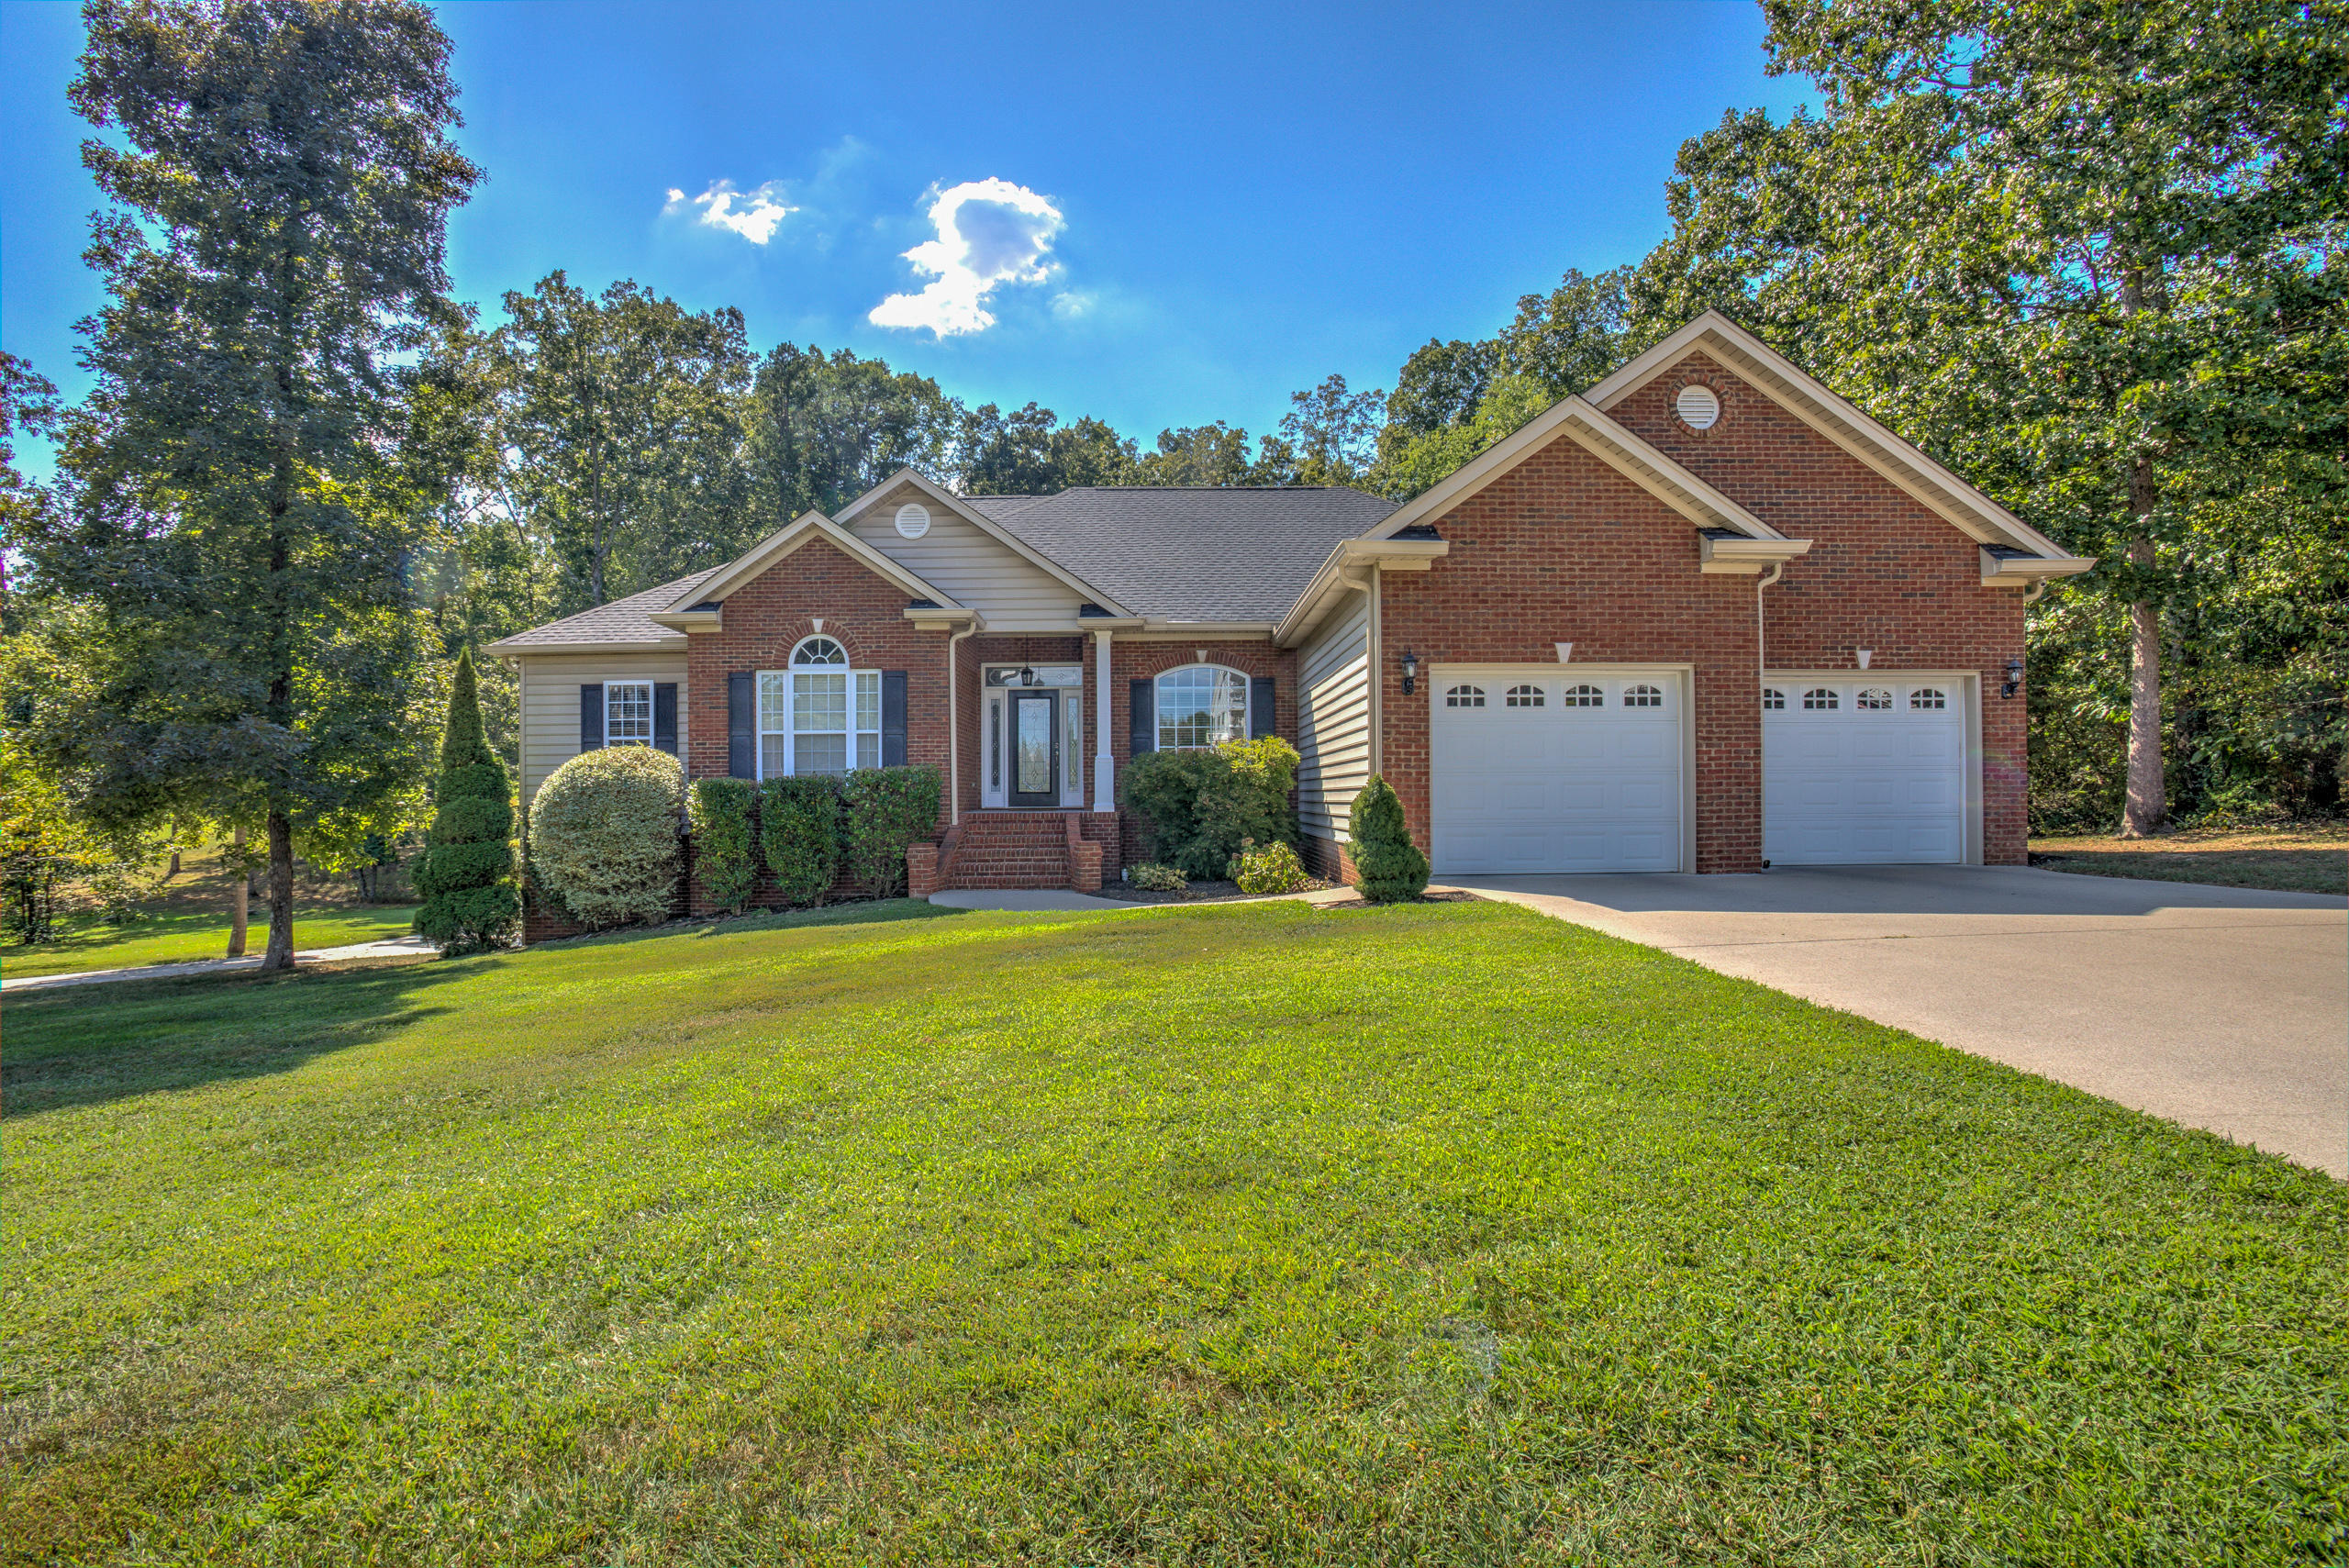 Cleveland Tn Homes For Sale Property Search Results Crye Leike Com Page 20